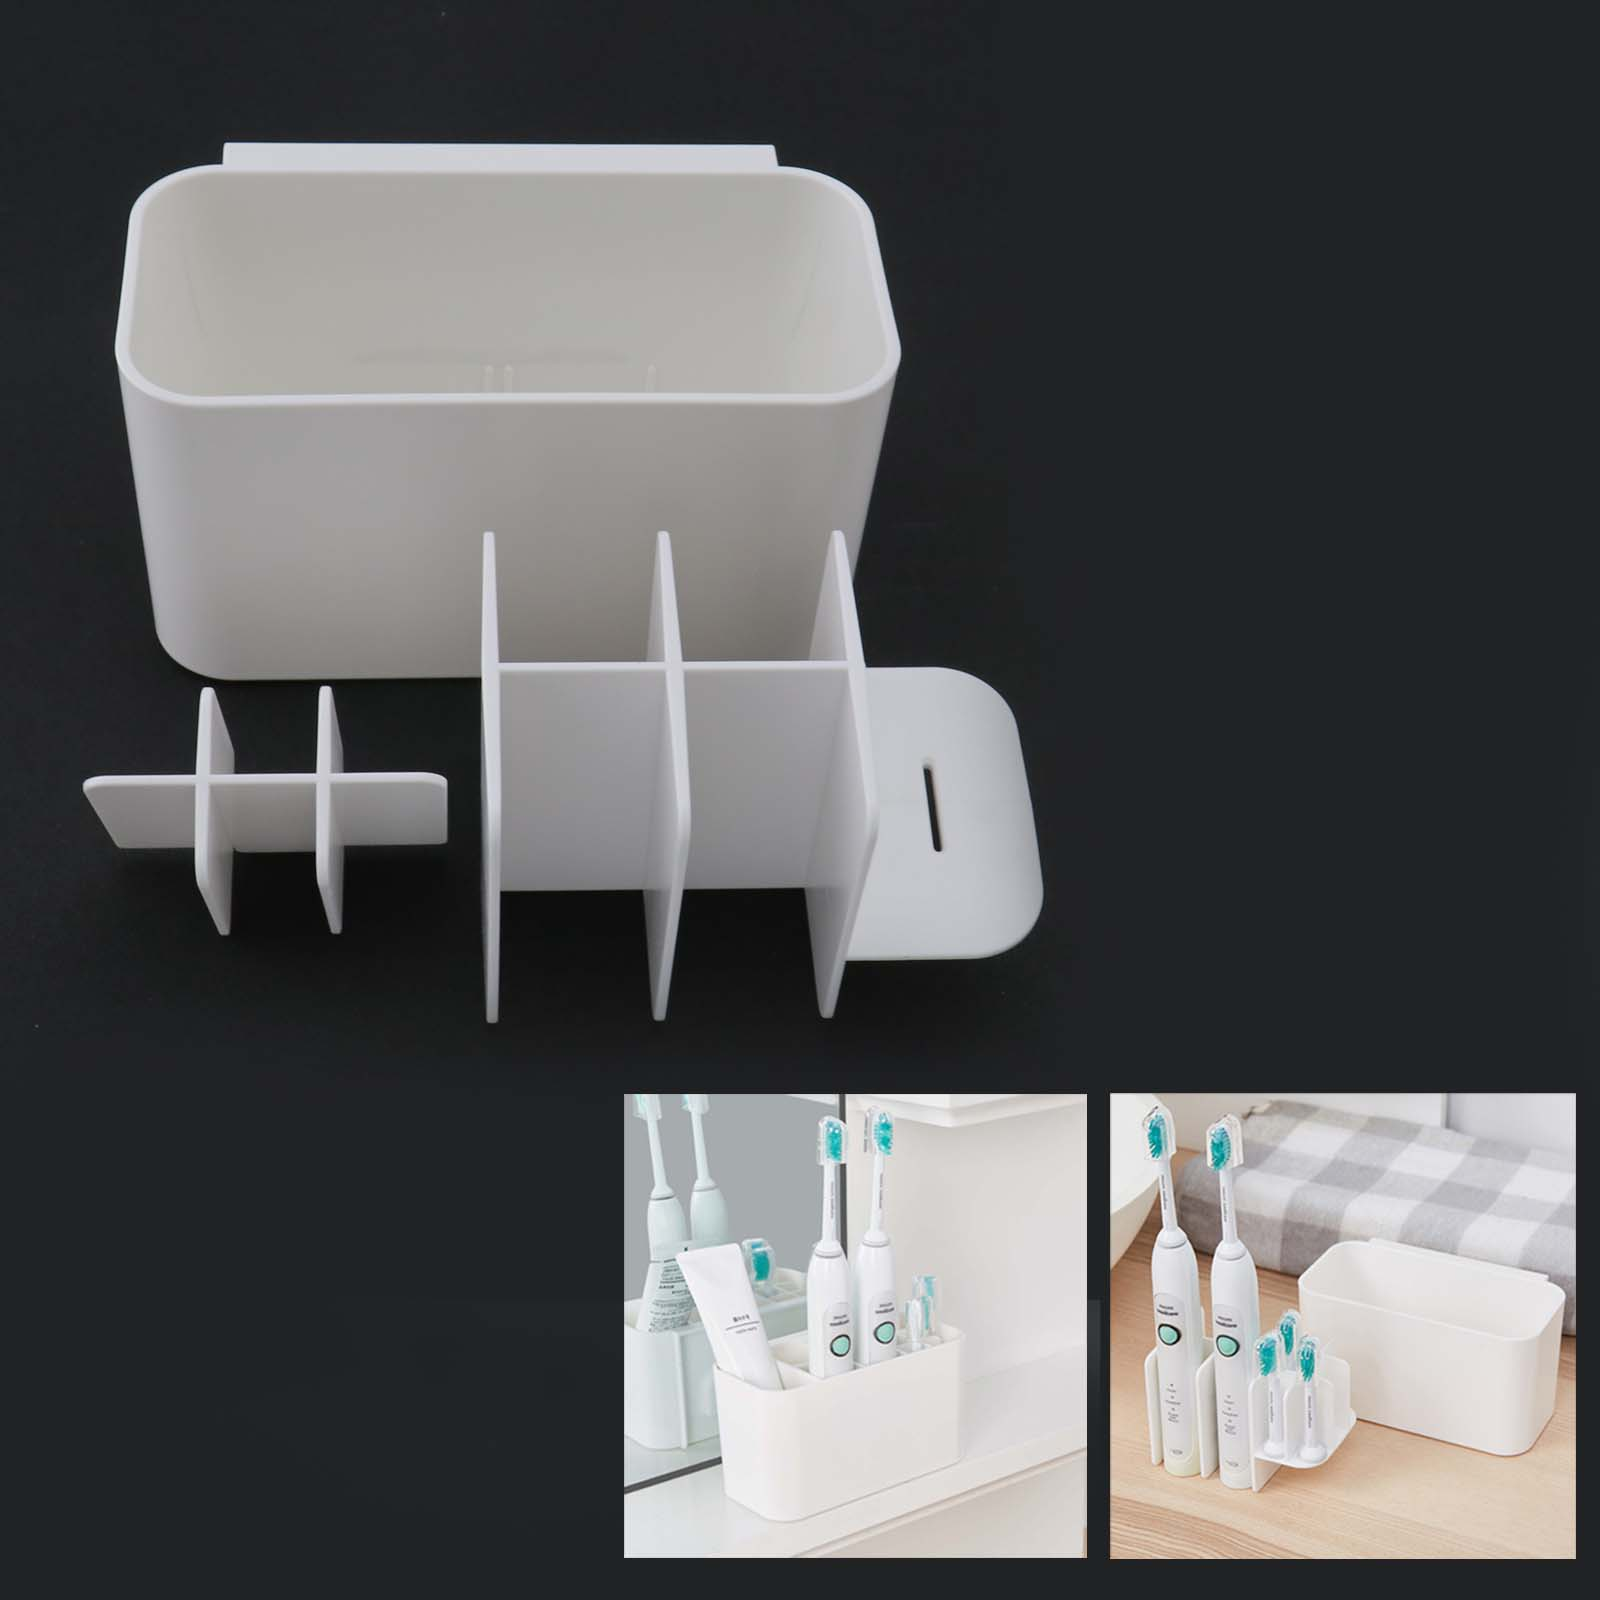 Metal Toothbrush Holder Bathroom Stand Wall Mount Toothpaste Container Durable